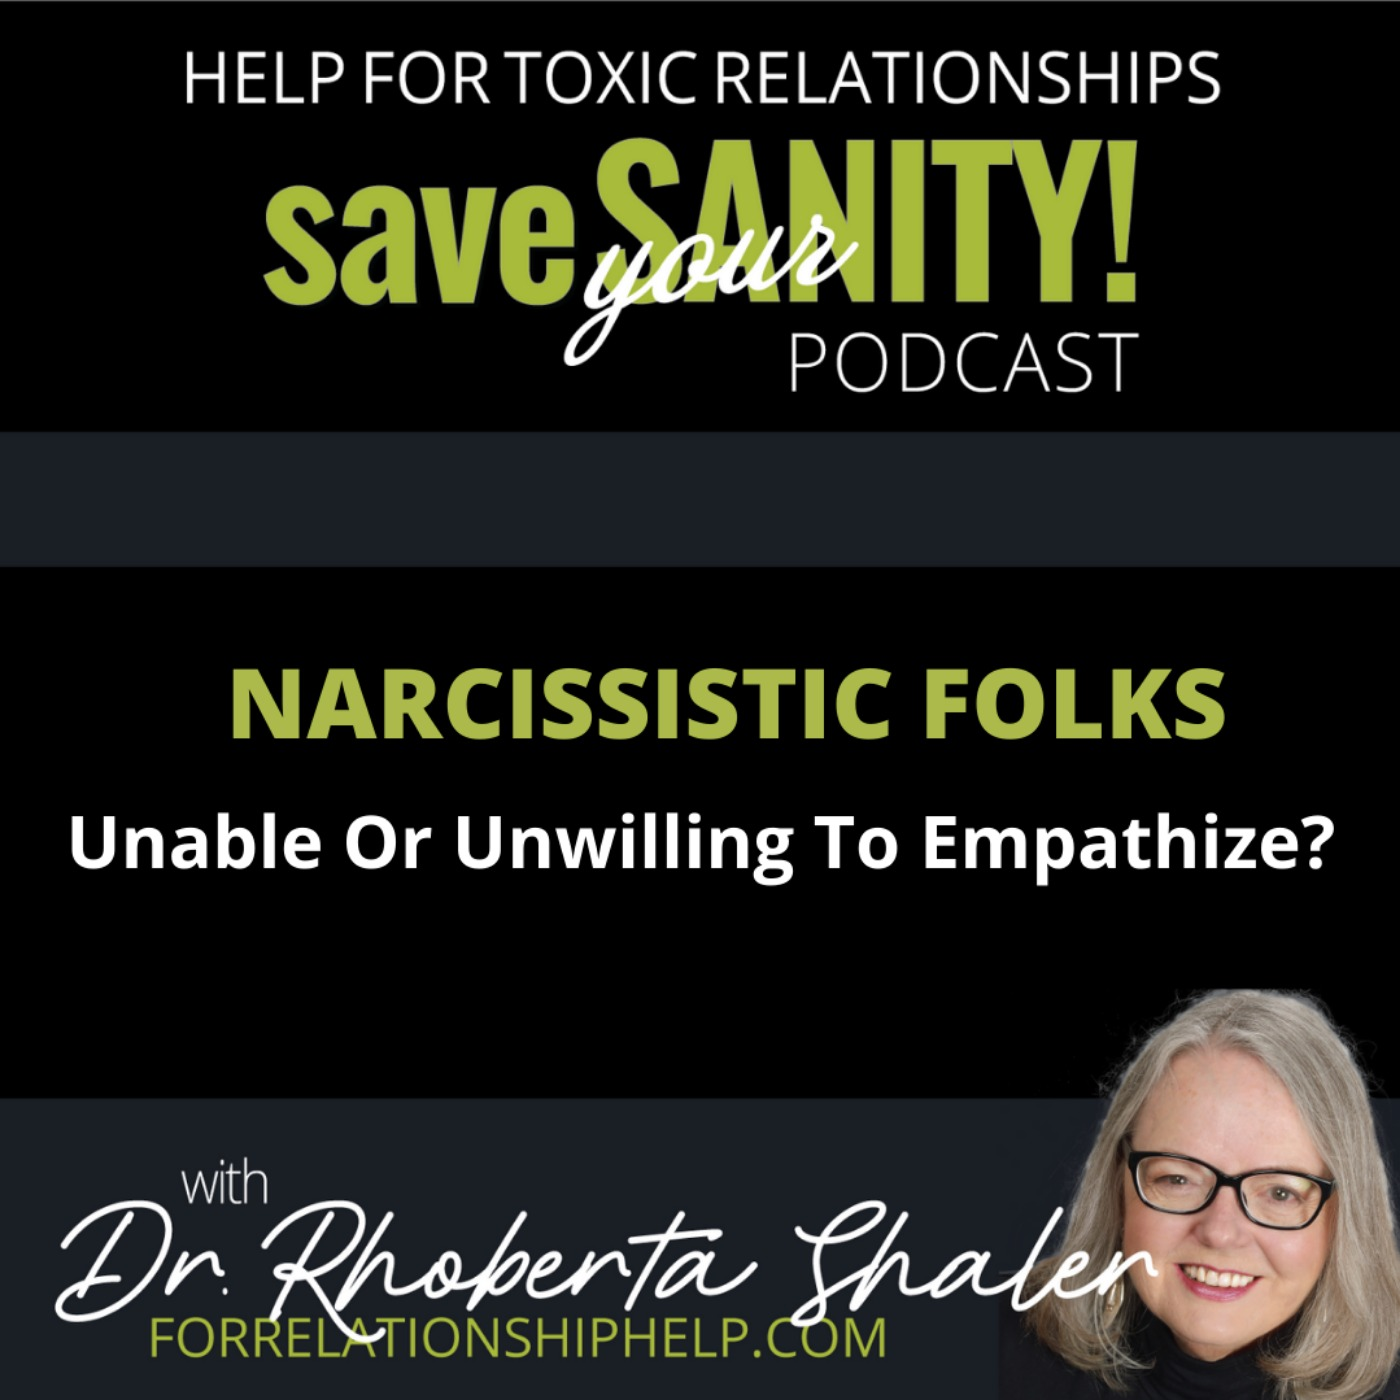 Narcissistic Folks: Unable Or Unwilling To Empathize?